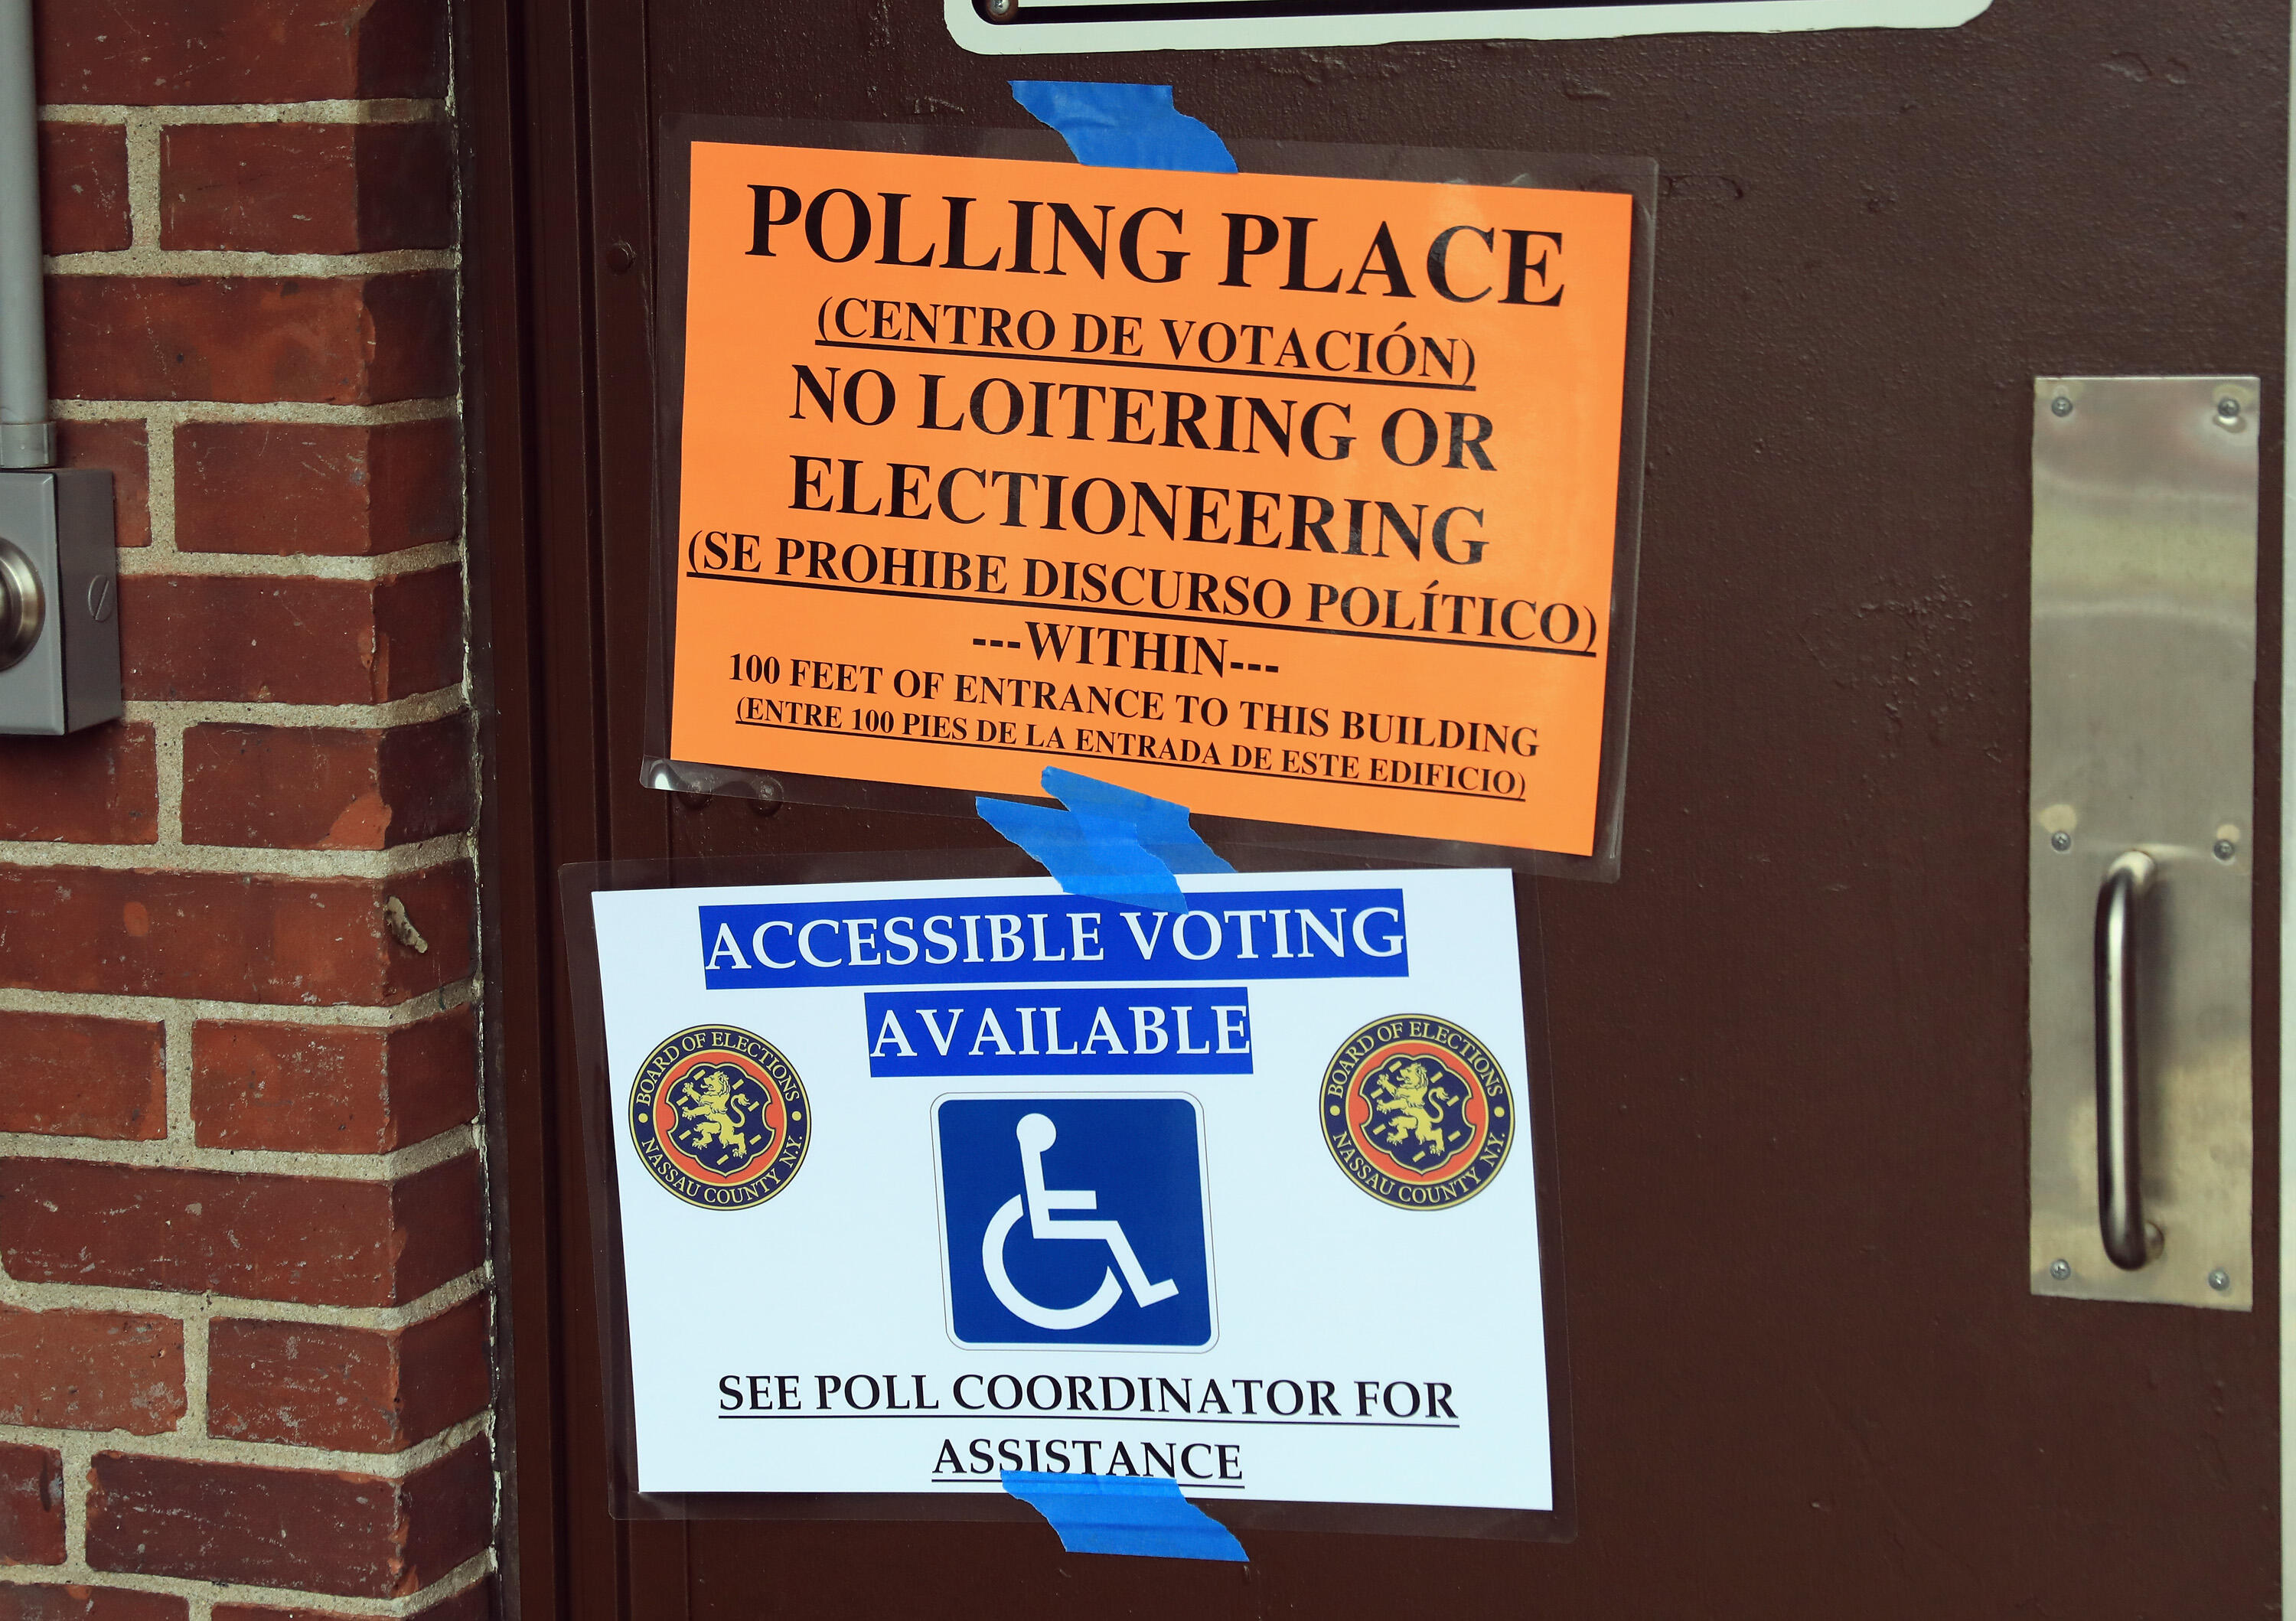 Voting accessibility